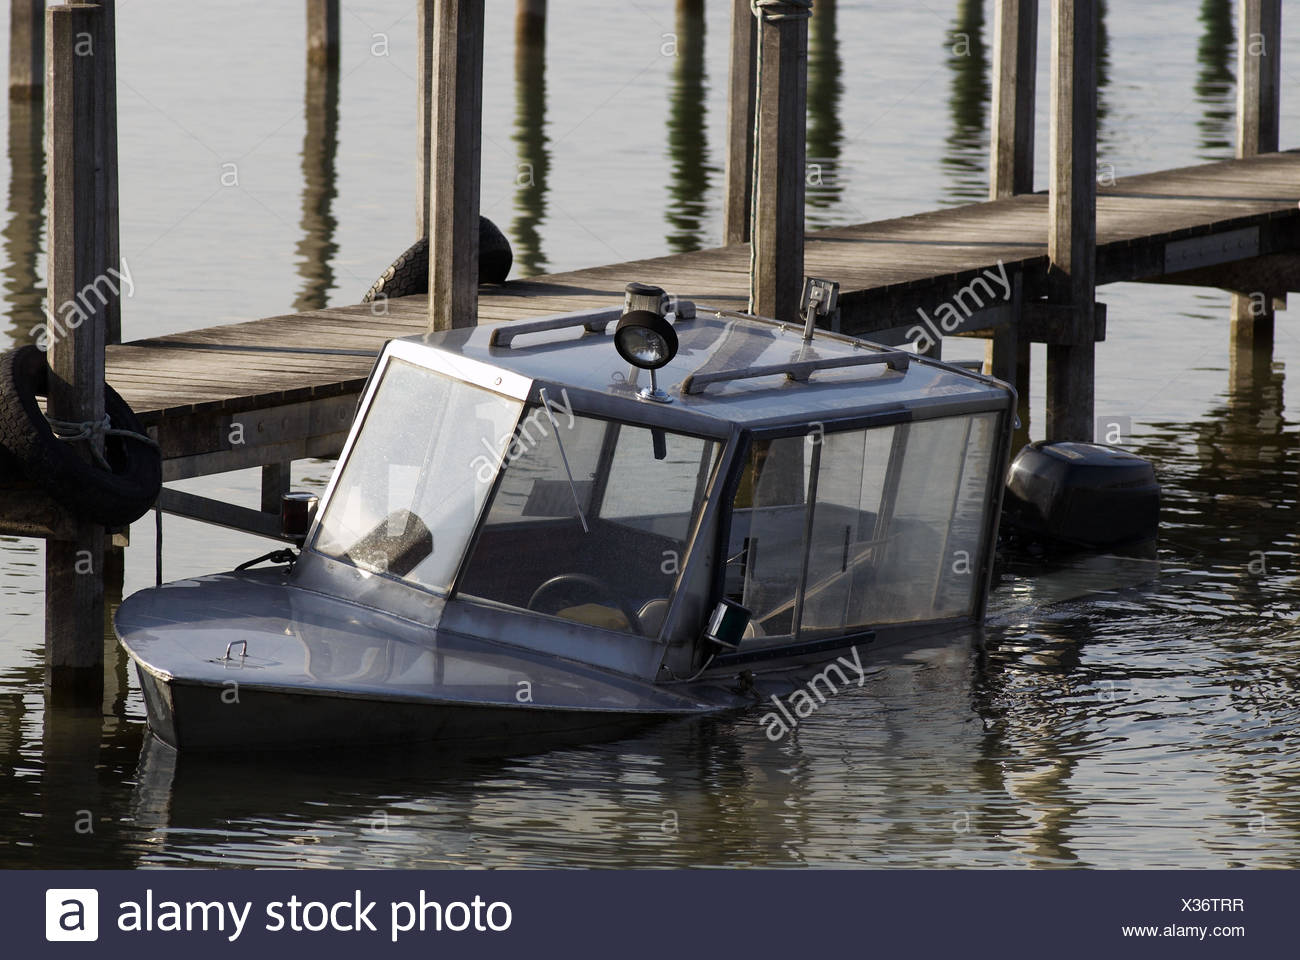 Average, landing stage, boat, wooden planks, wooden posts, automobile tyres, water, mirroring, - Stock Image